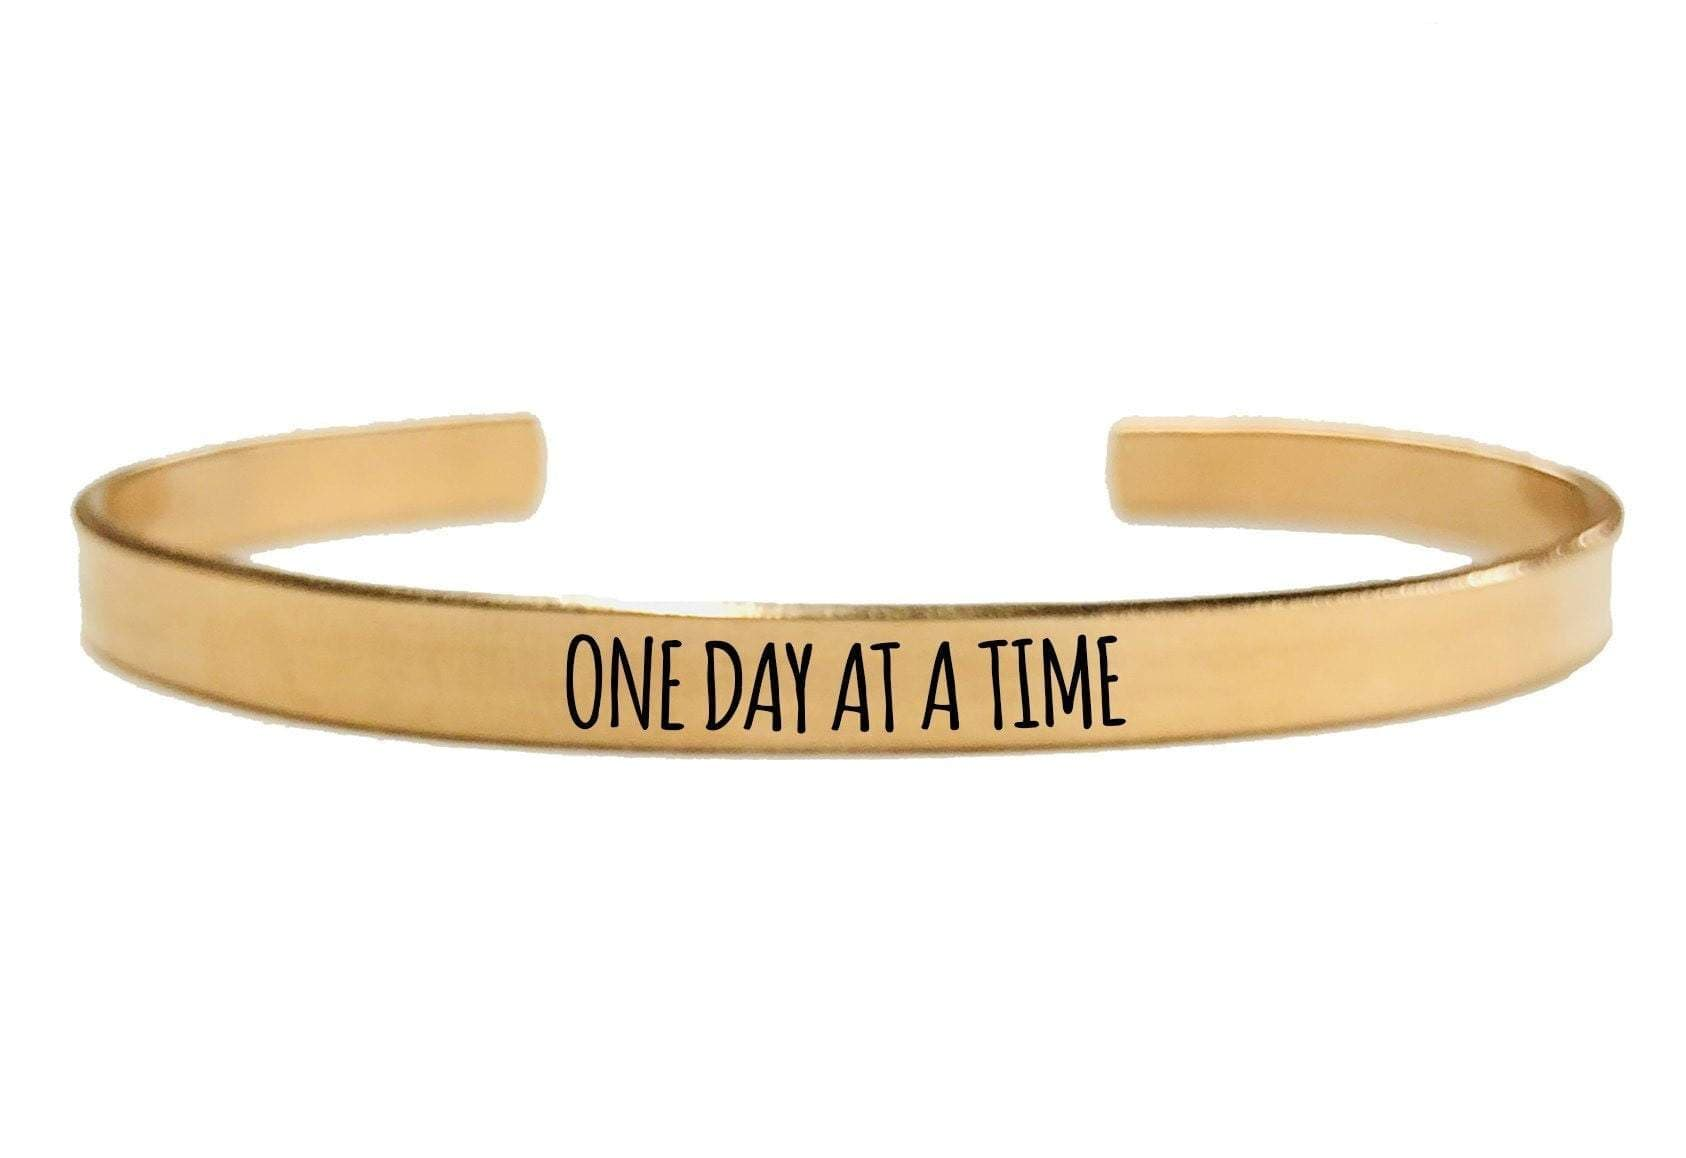 ONE DAY AT A TIME CUFF BRACELET